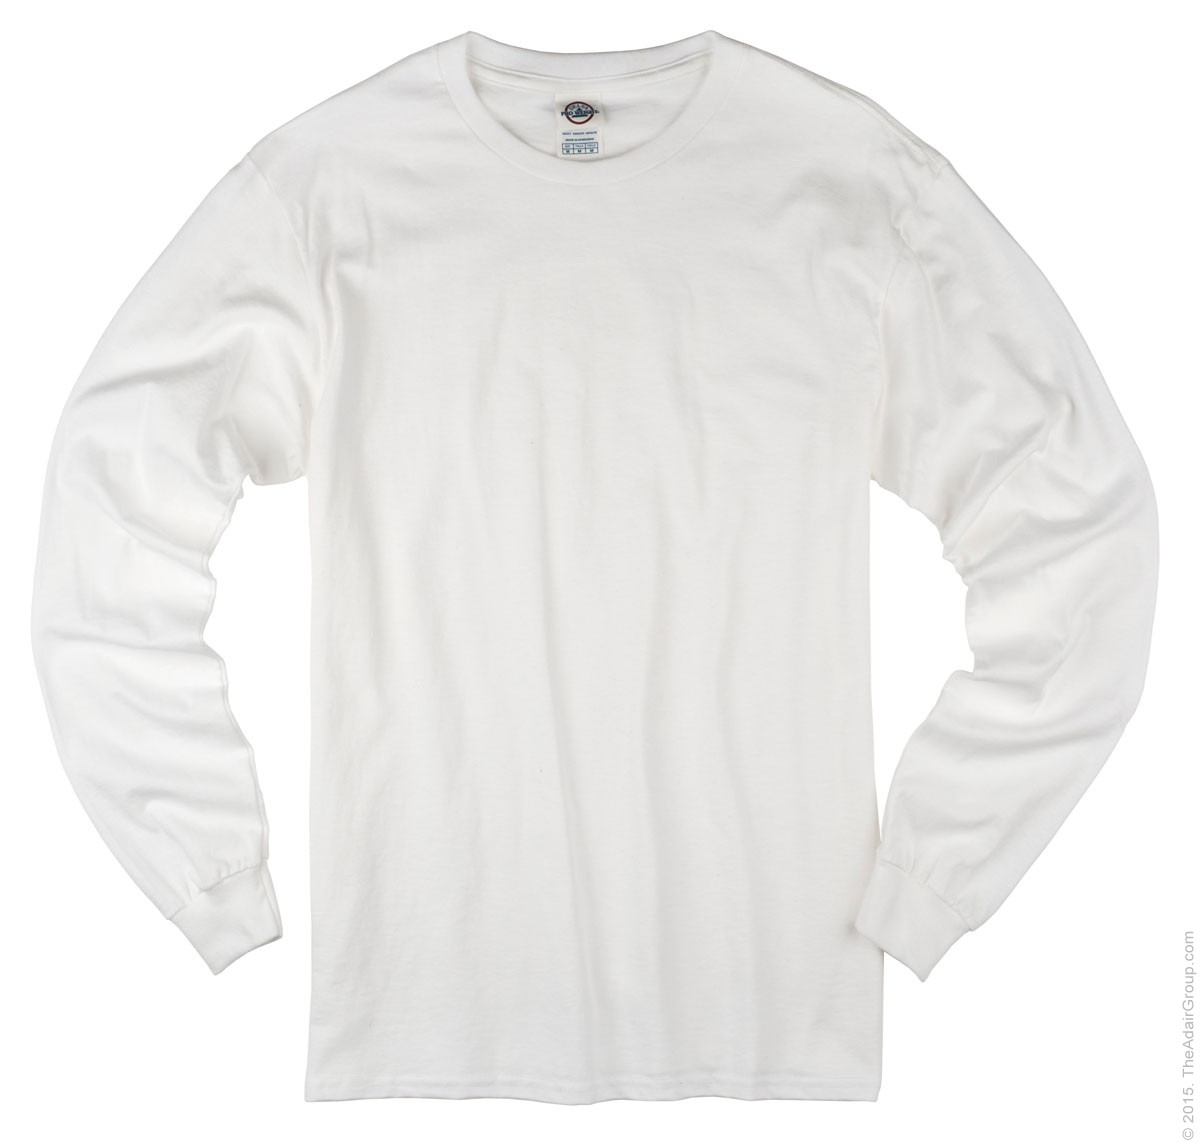 Bulk Plain White T-Shirts - Wholesale Pricing